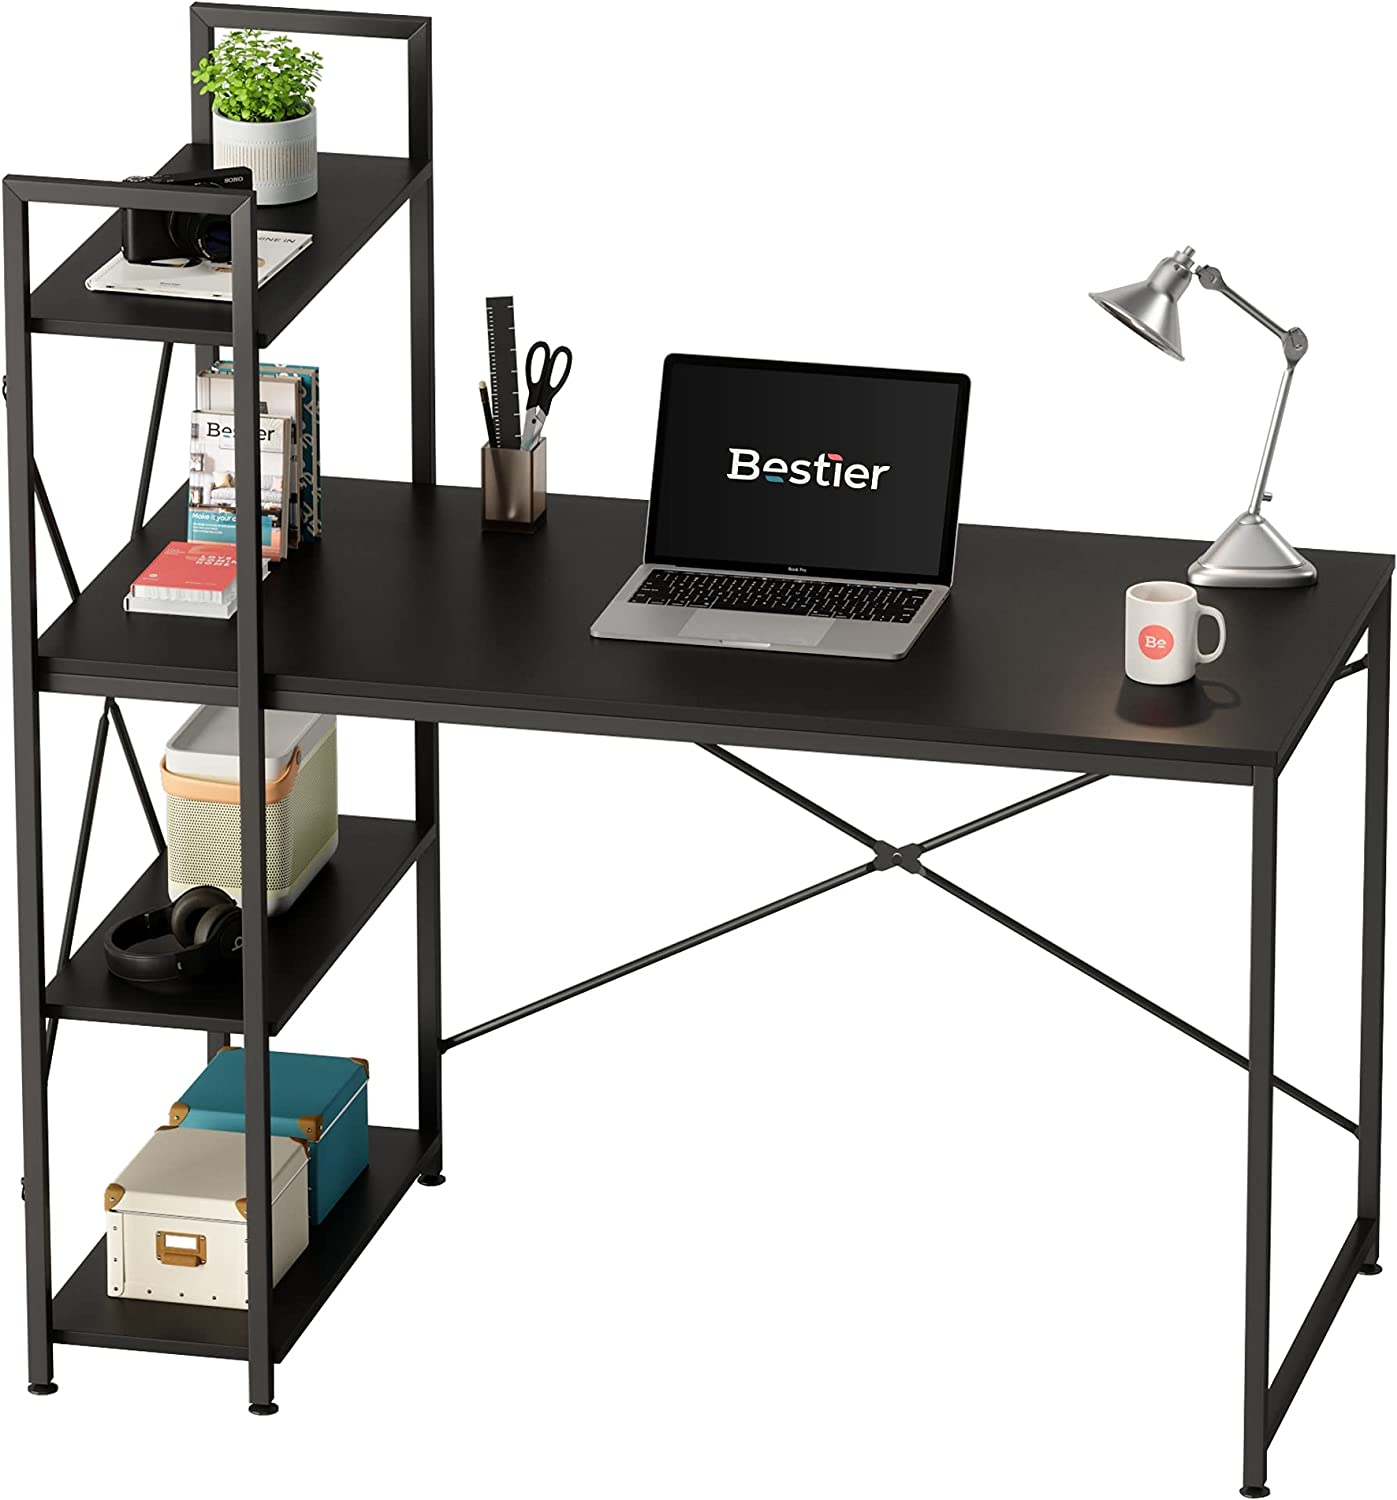 Bestier Computer Desk with Storage Shelves 47 Inch Home Office Desk Writing Table (Black, 47 Inch)